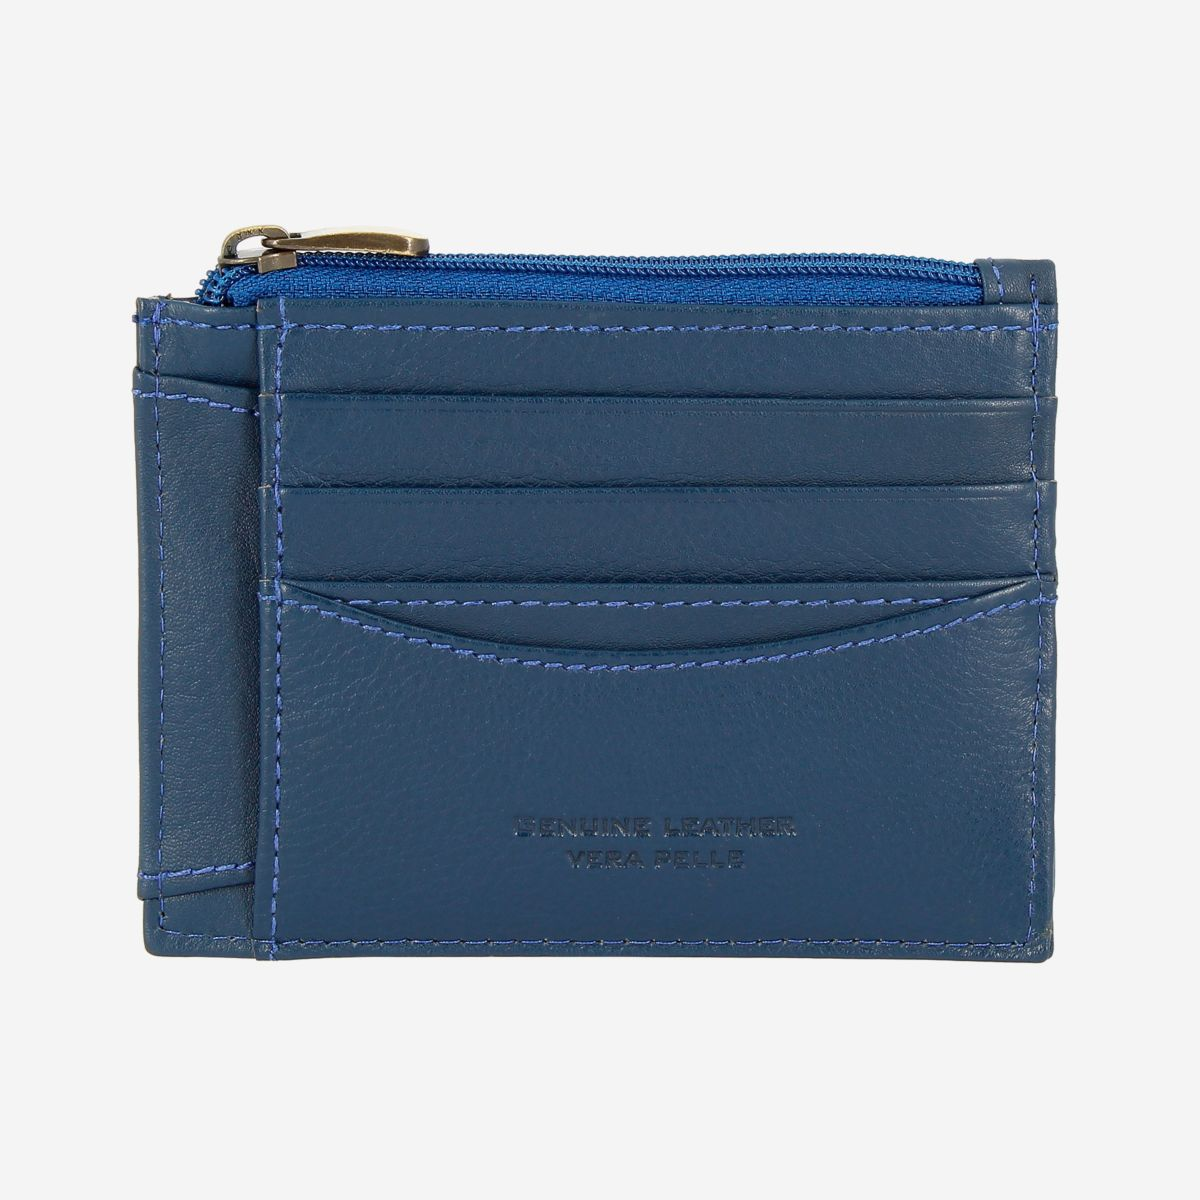 NUVOLA PELLE Slim Leather Credit Card Wallet - Blue